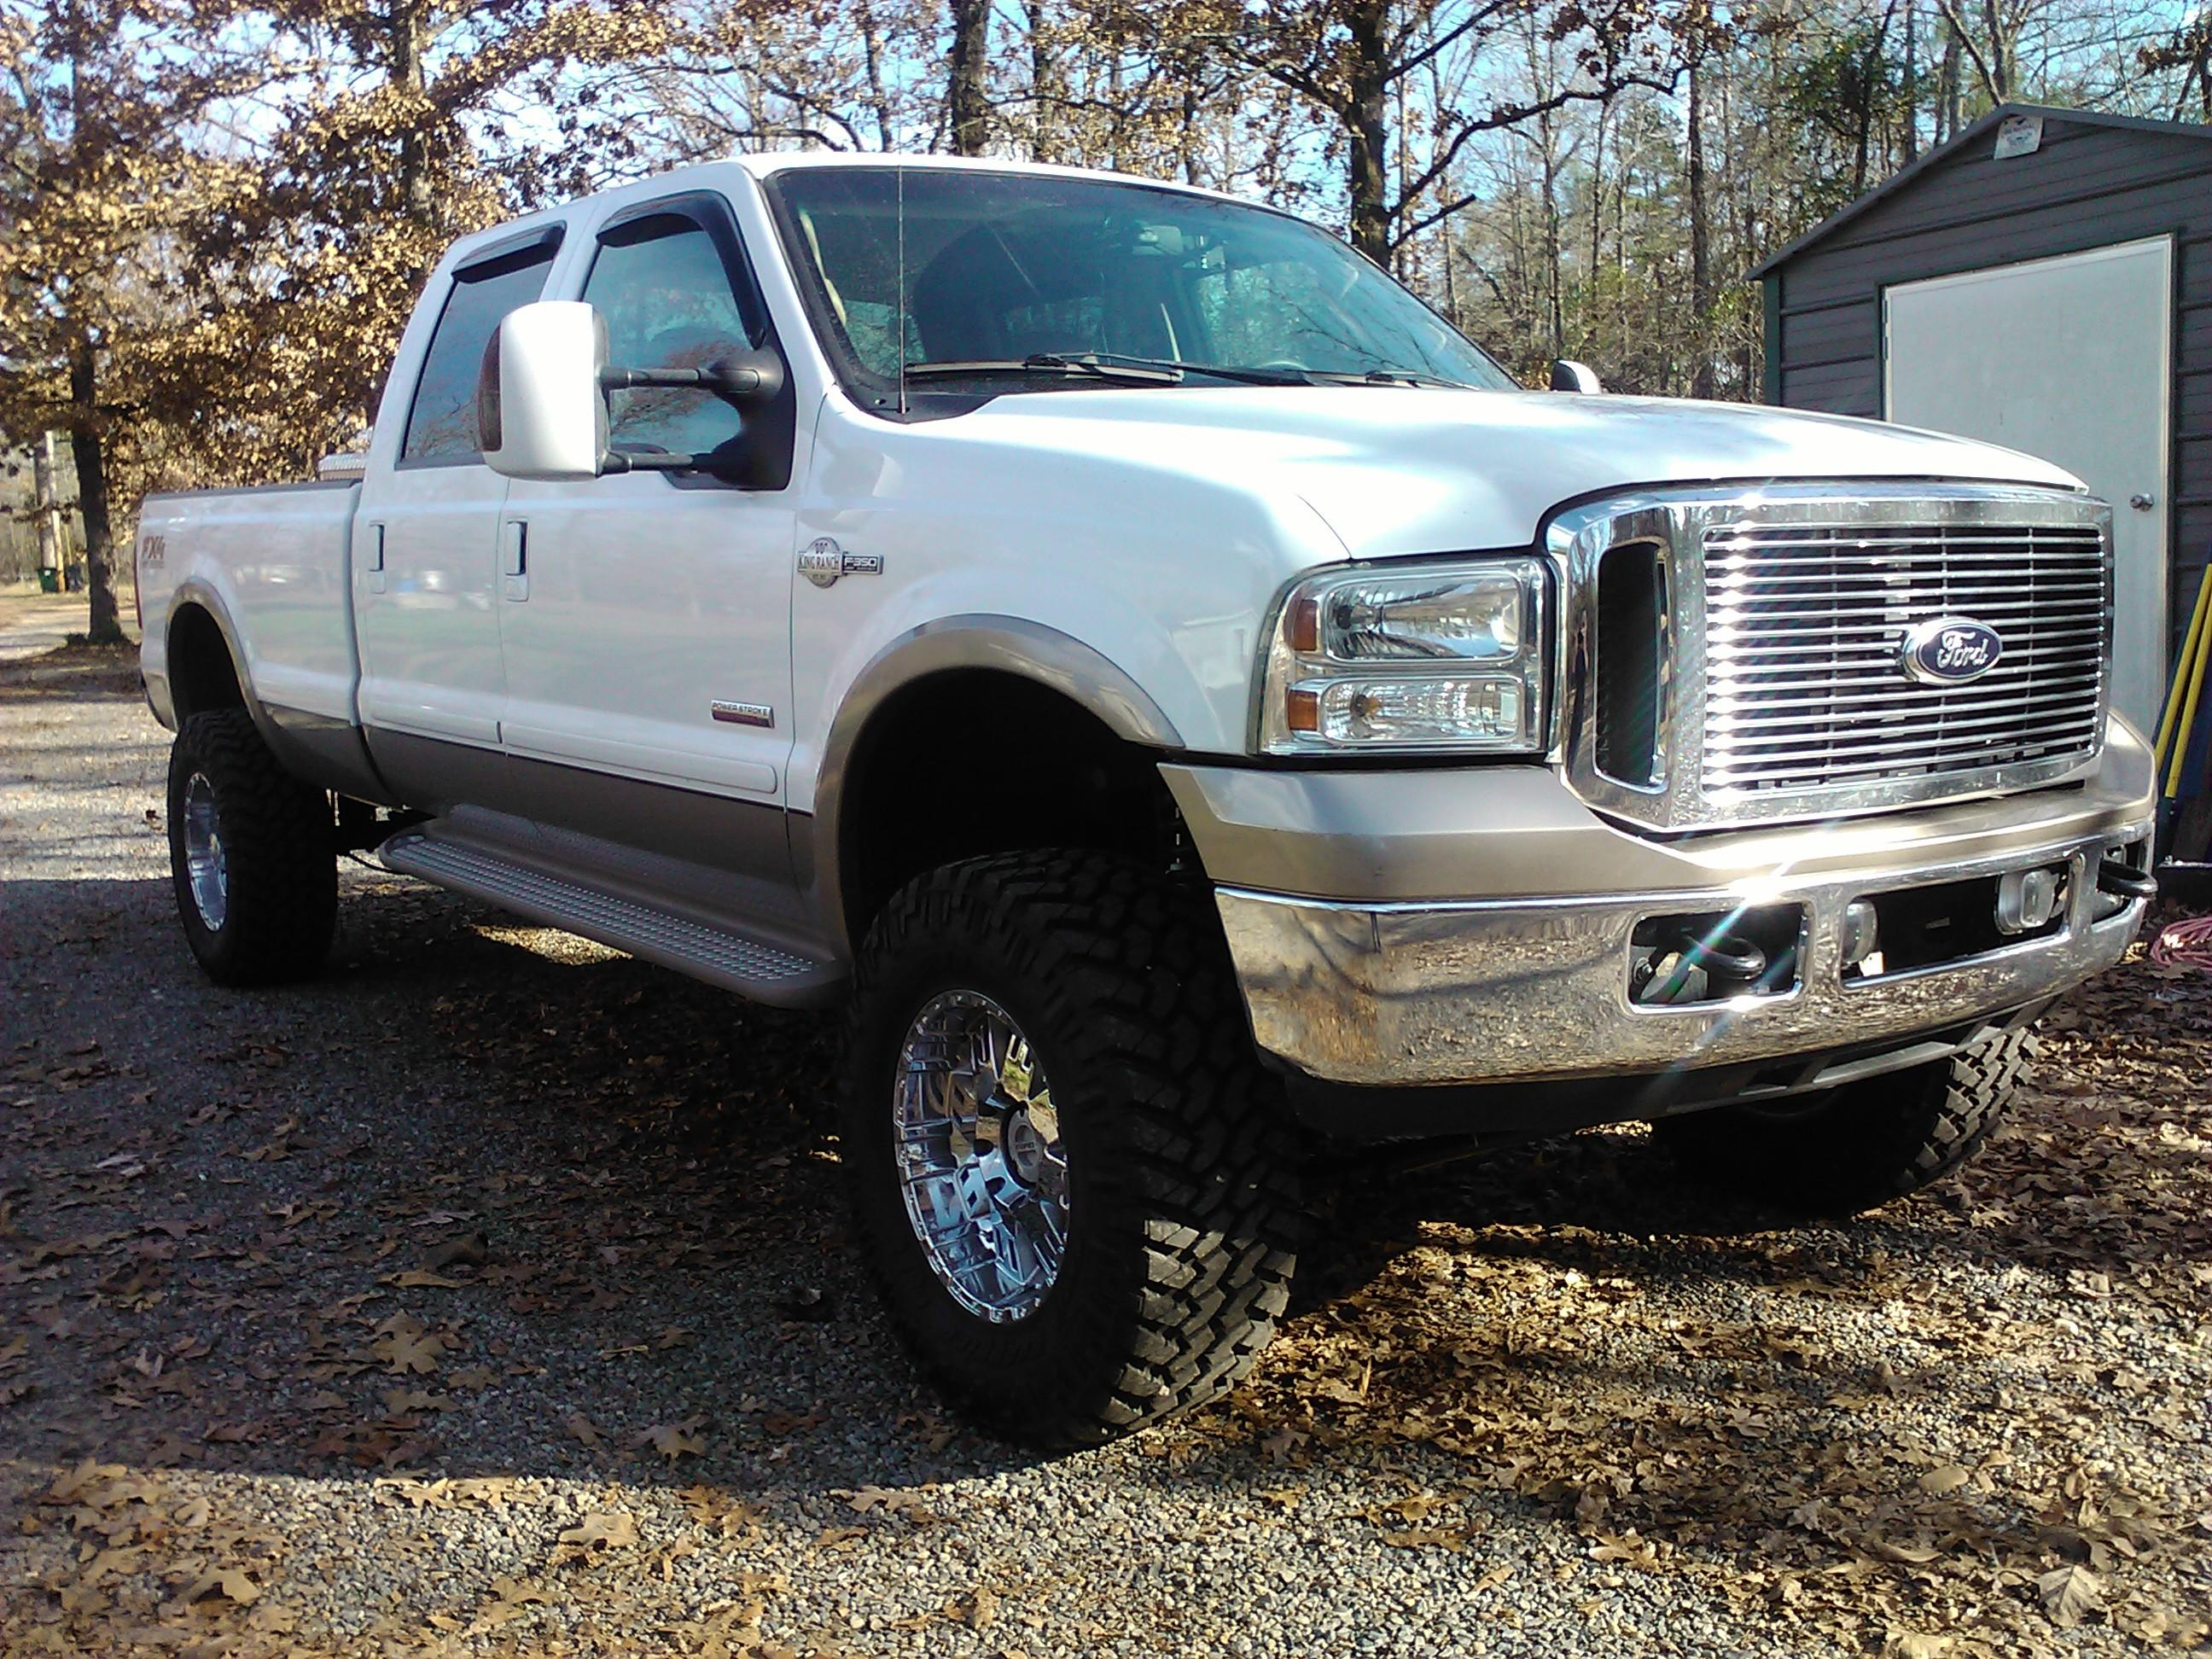 lucaseberry's 2006 Ford F350 Super Duty Crew Cab